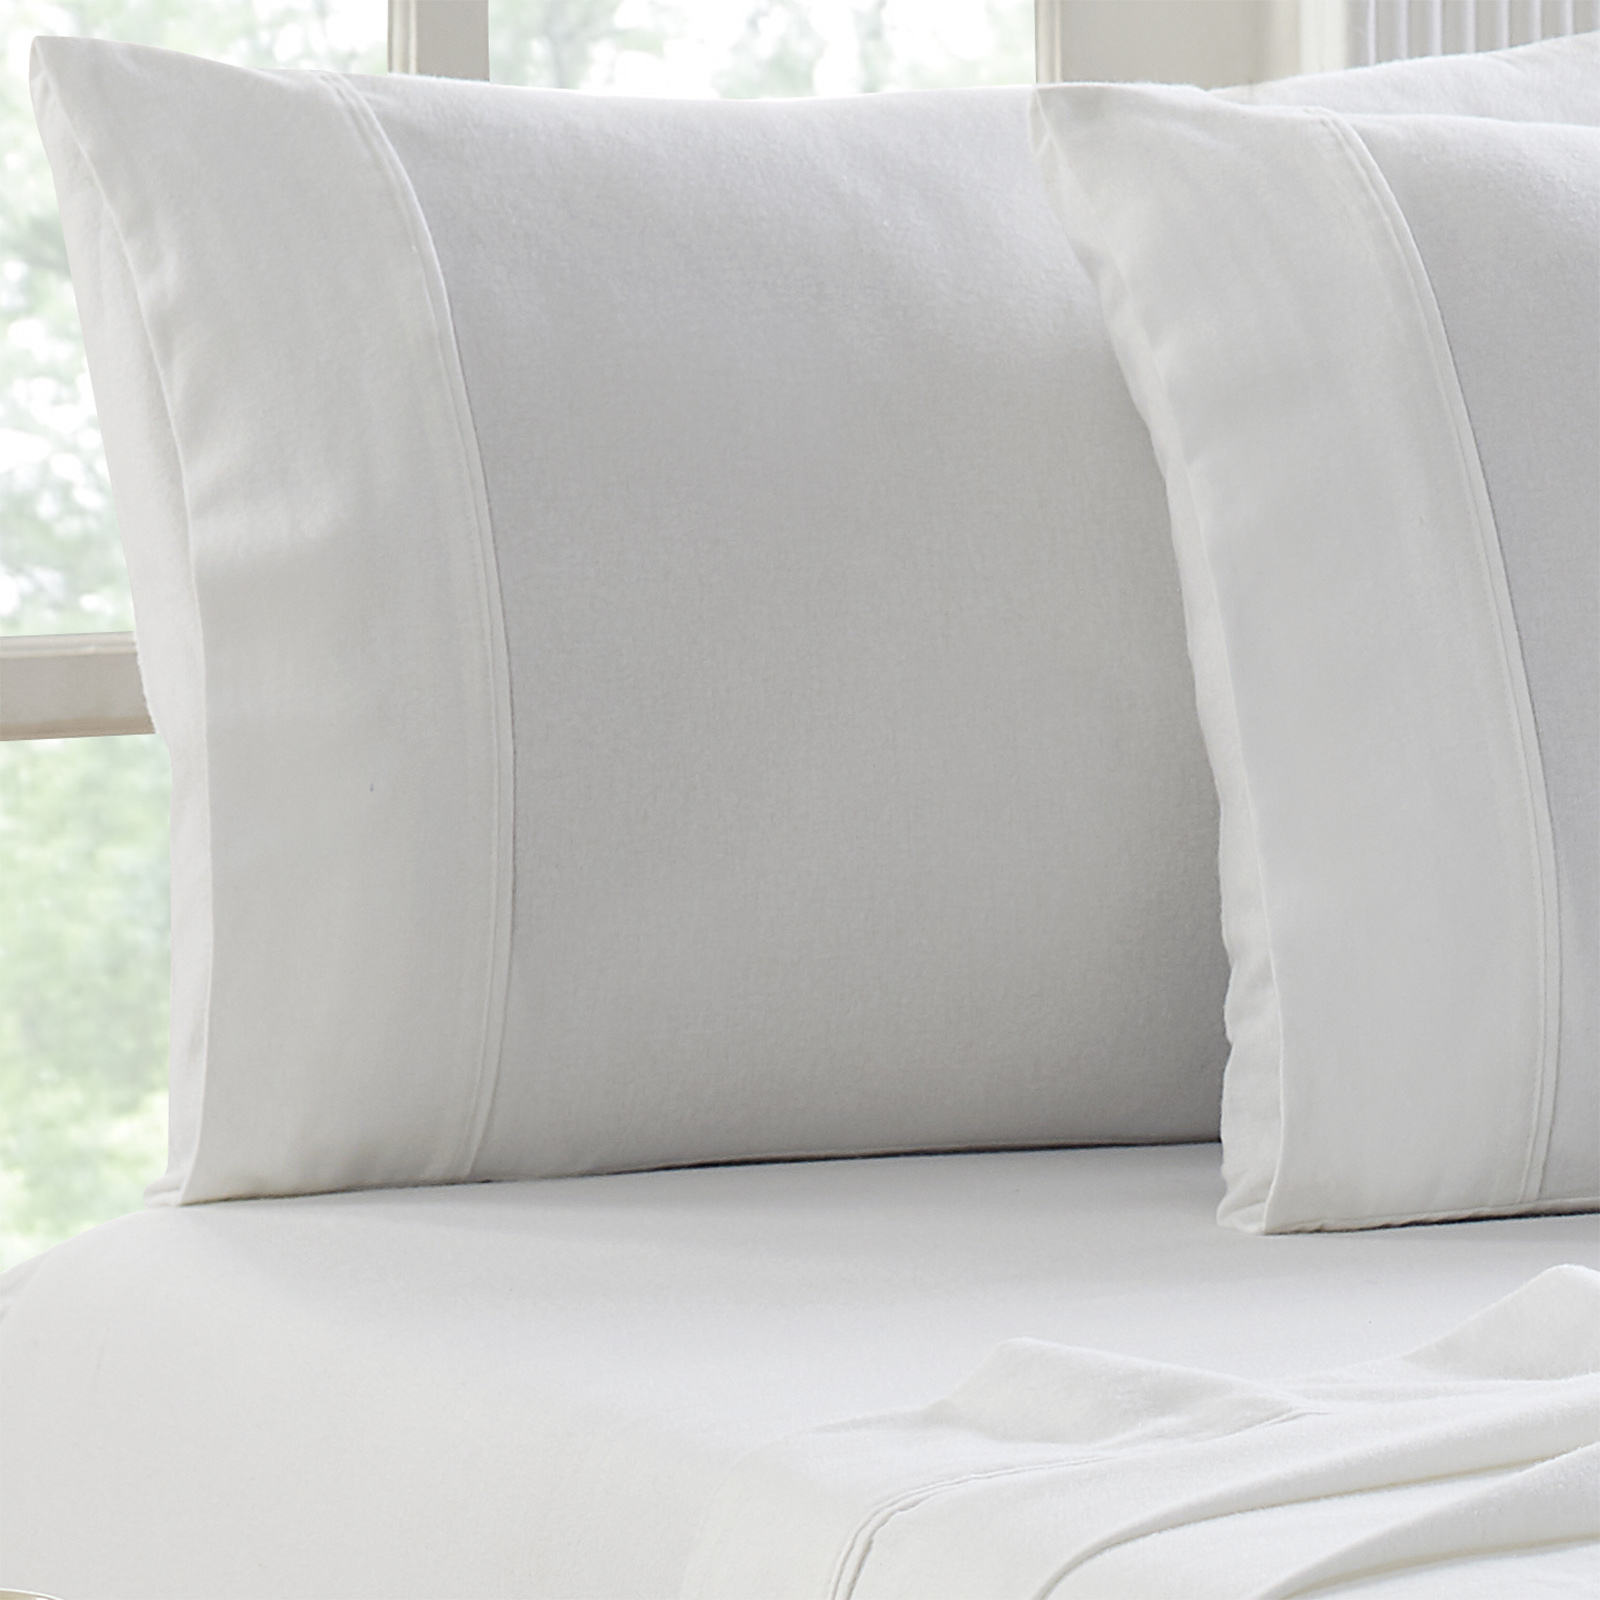 Flannel Sheet Set Egyptian Cotton 175 GSM Brushed - Colour White - From $39.95